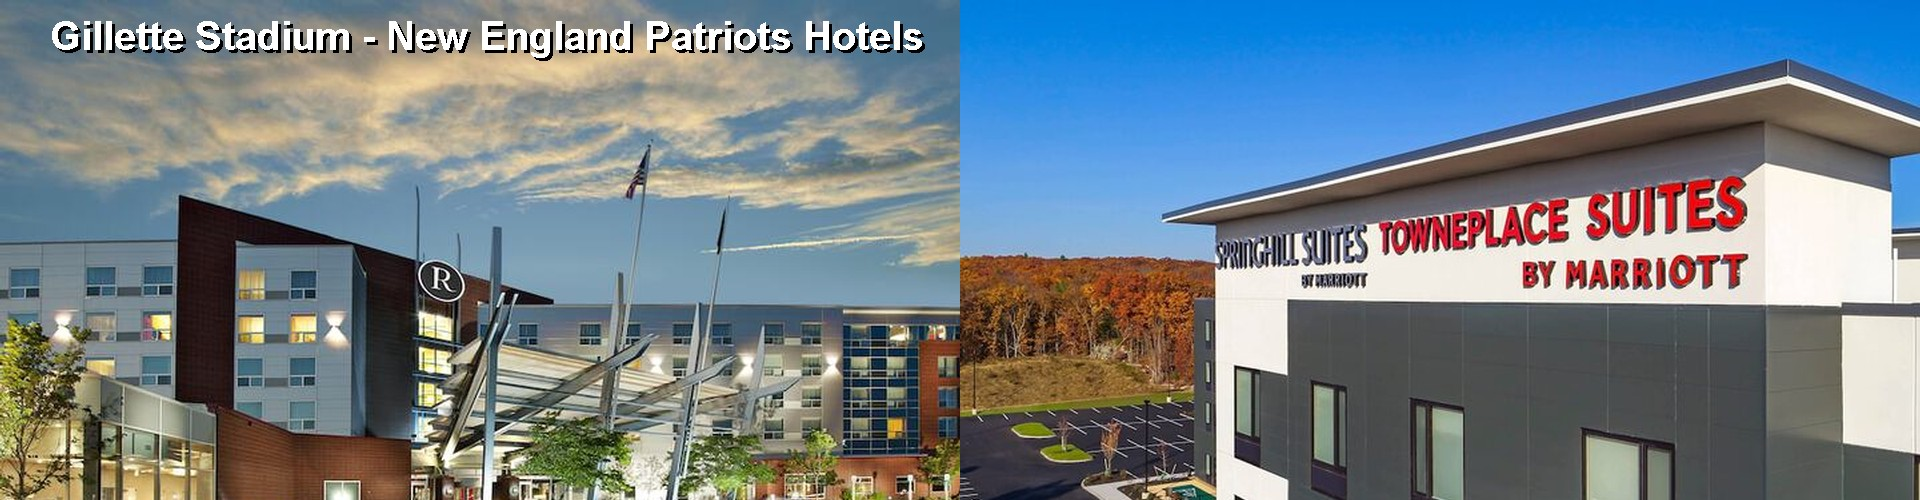 Hotels Near Gillette Stadium New England Patriots in Foxboro MA